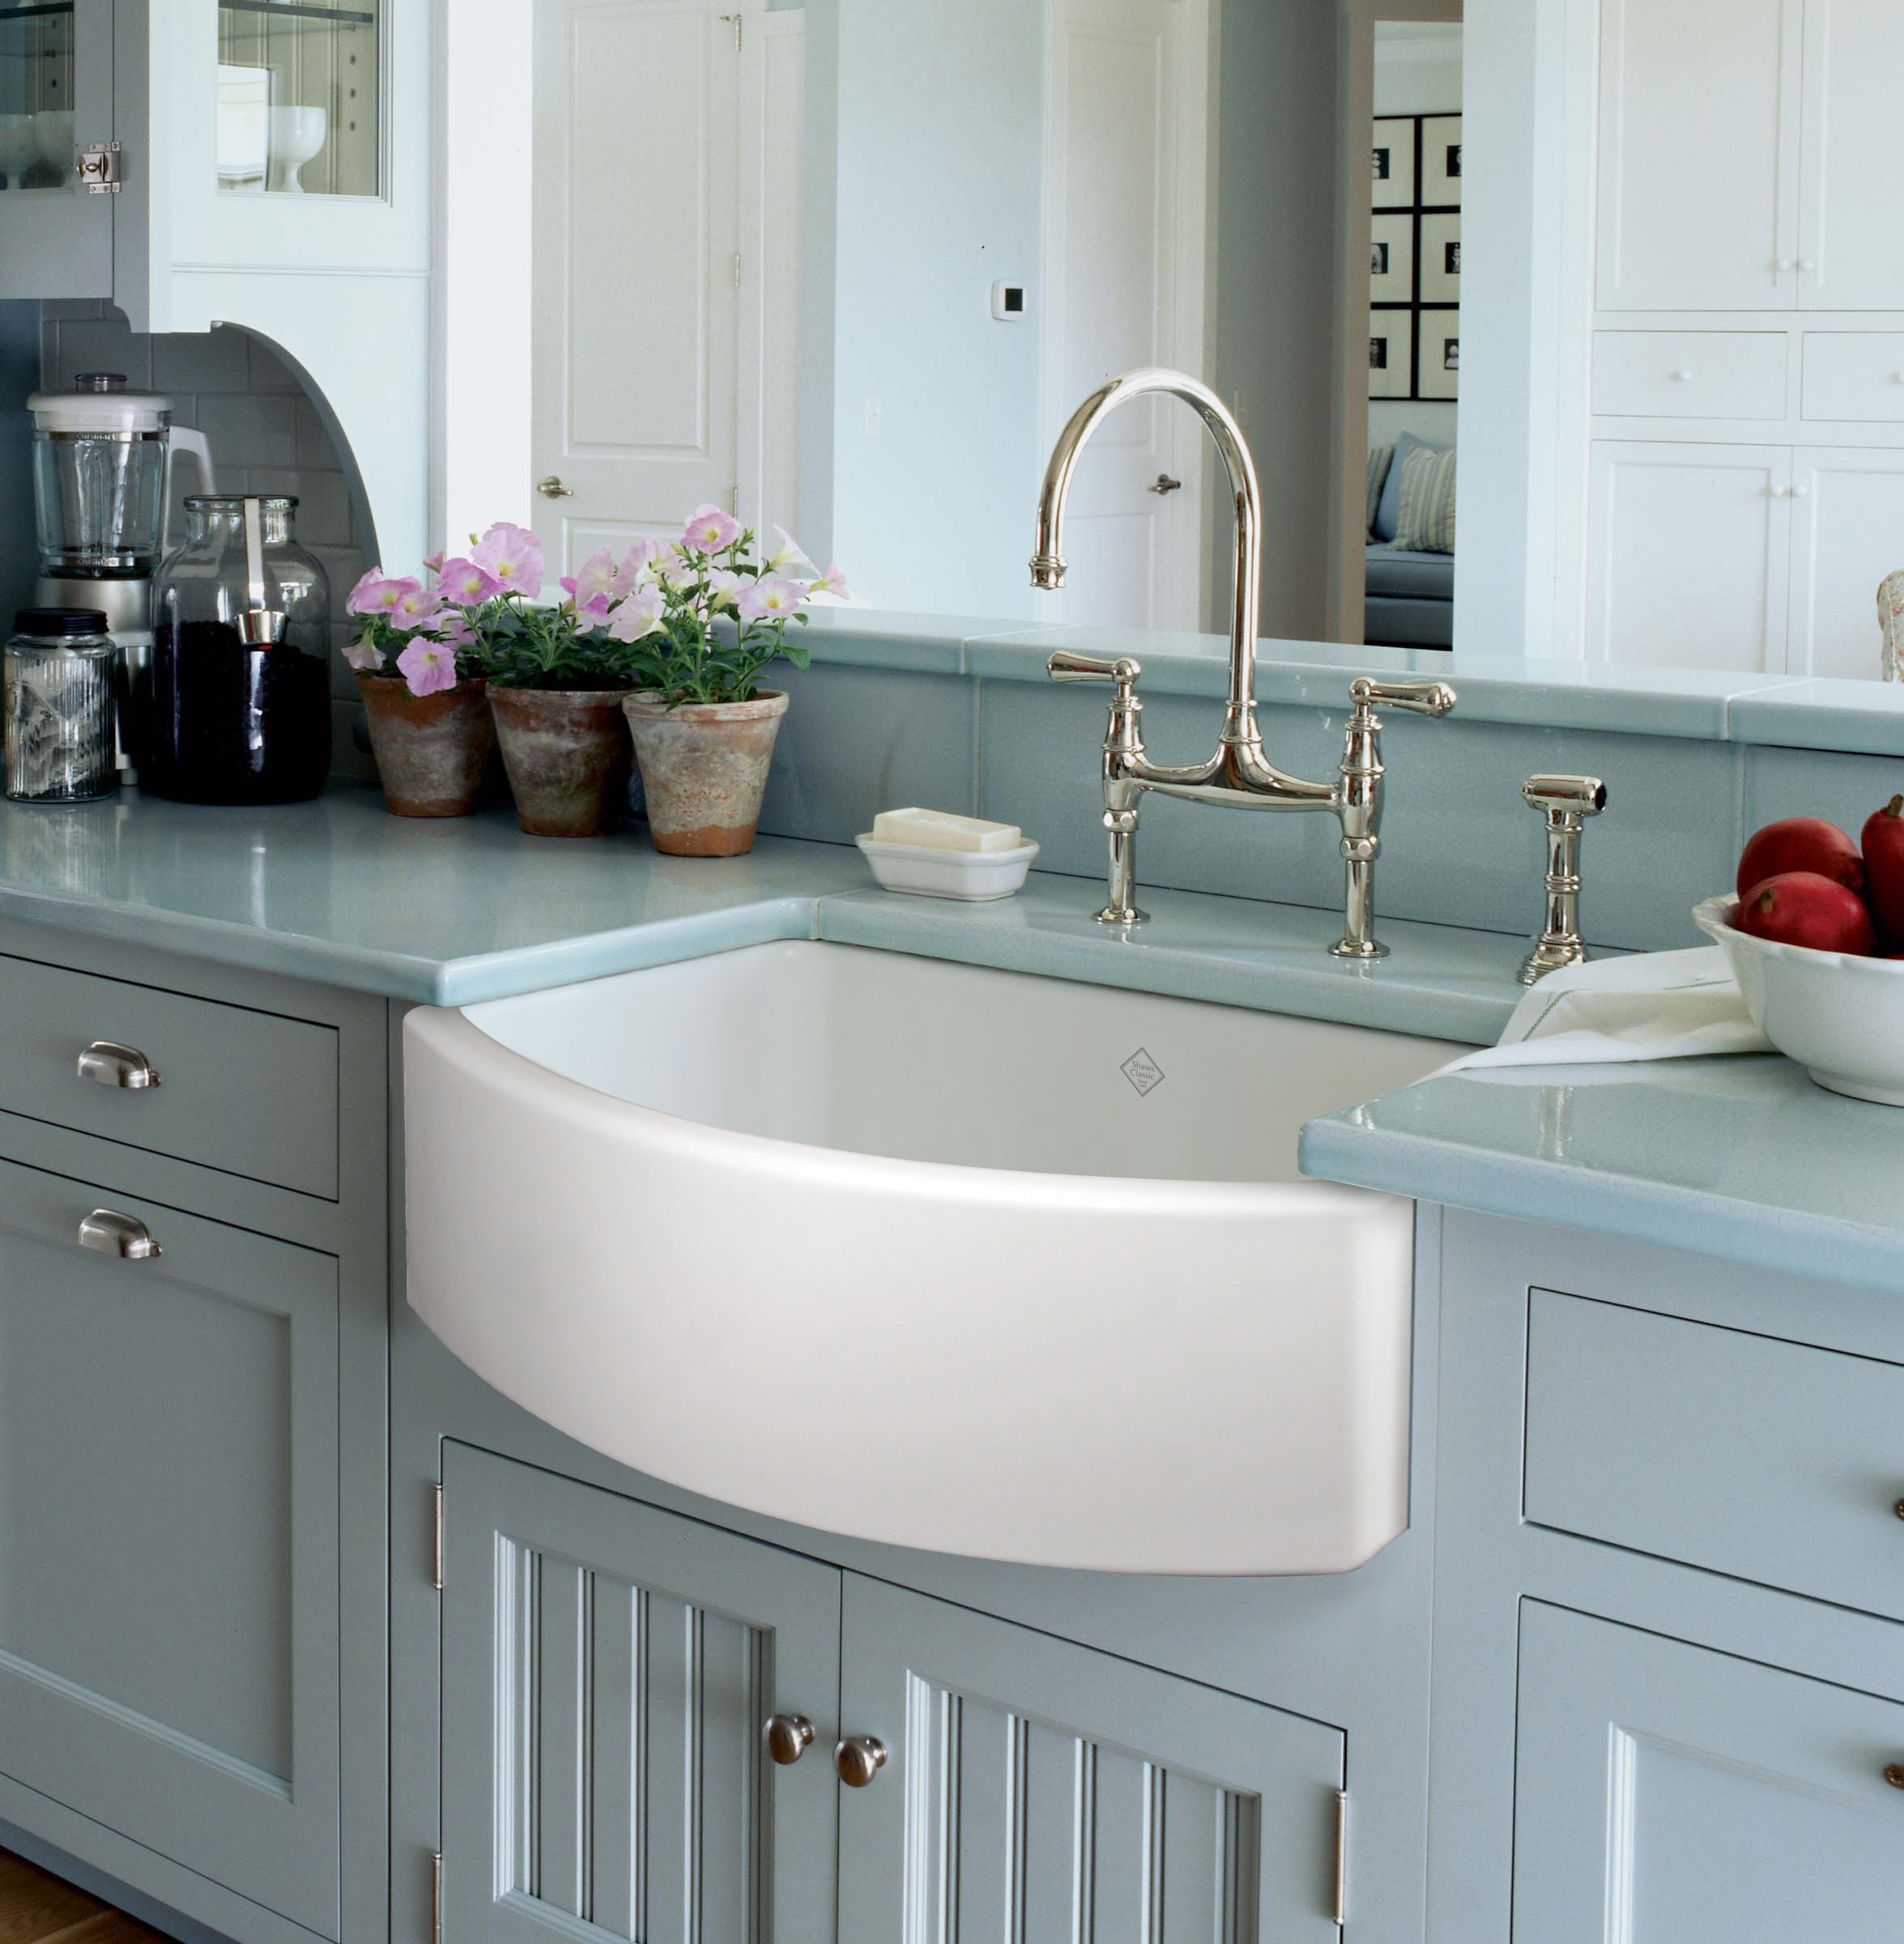 New Rohl Shaws Waterside Fireclay Sink Wins Best Kitchen Product Gold Award In Best Of Kbis 2013 Awards Kbis